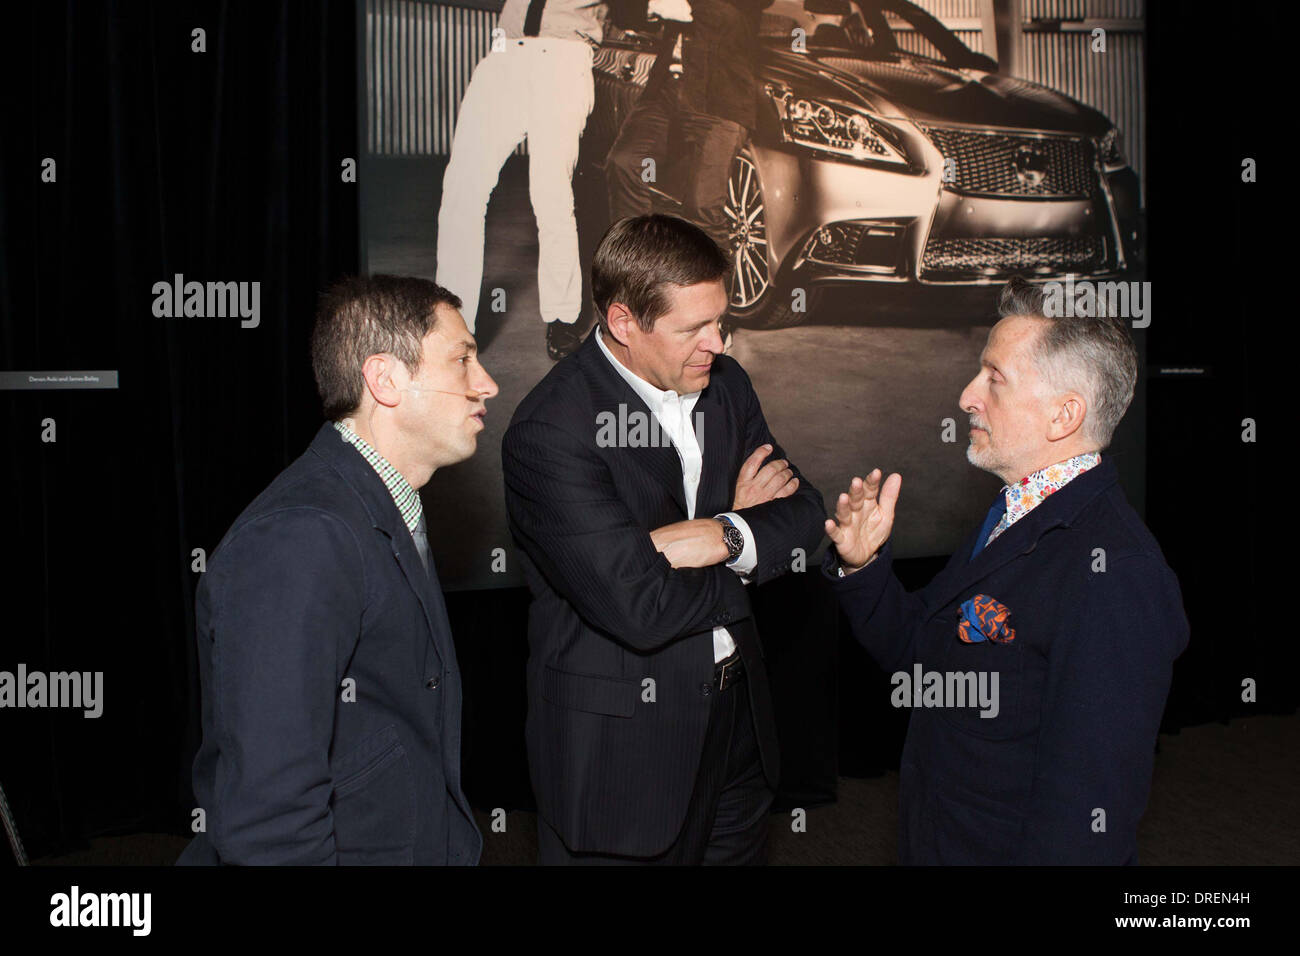 Jonathan Adler, Mark Templin, Simon Doonan Lexus unveils the LS 460 F Sport with a photo Exhibit by Ellen von Unwerth at The Metreon City View San Francisco, California - 30.07.12 - Stock Image